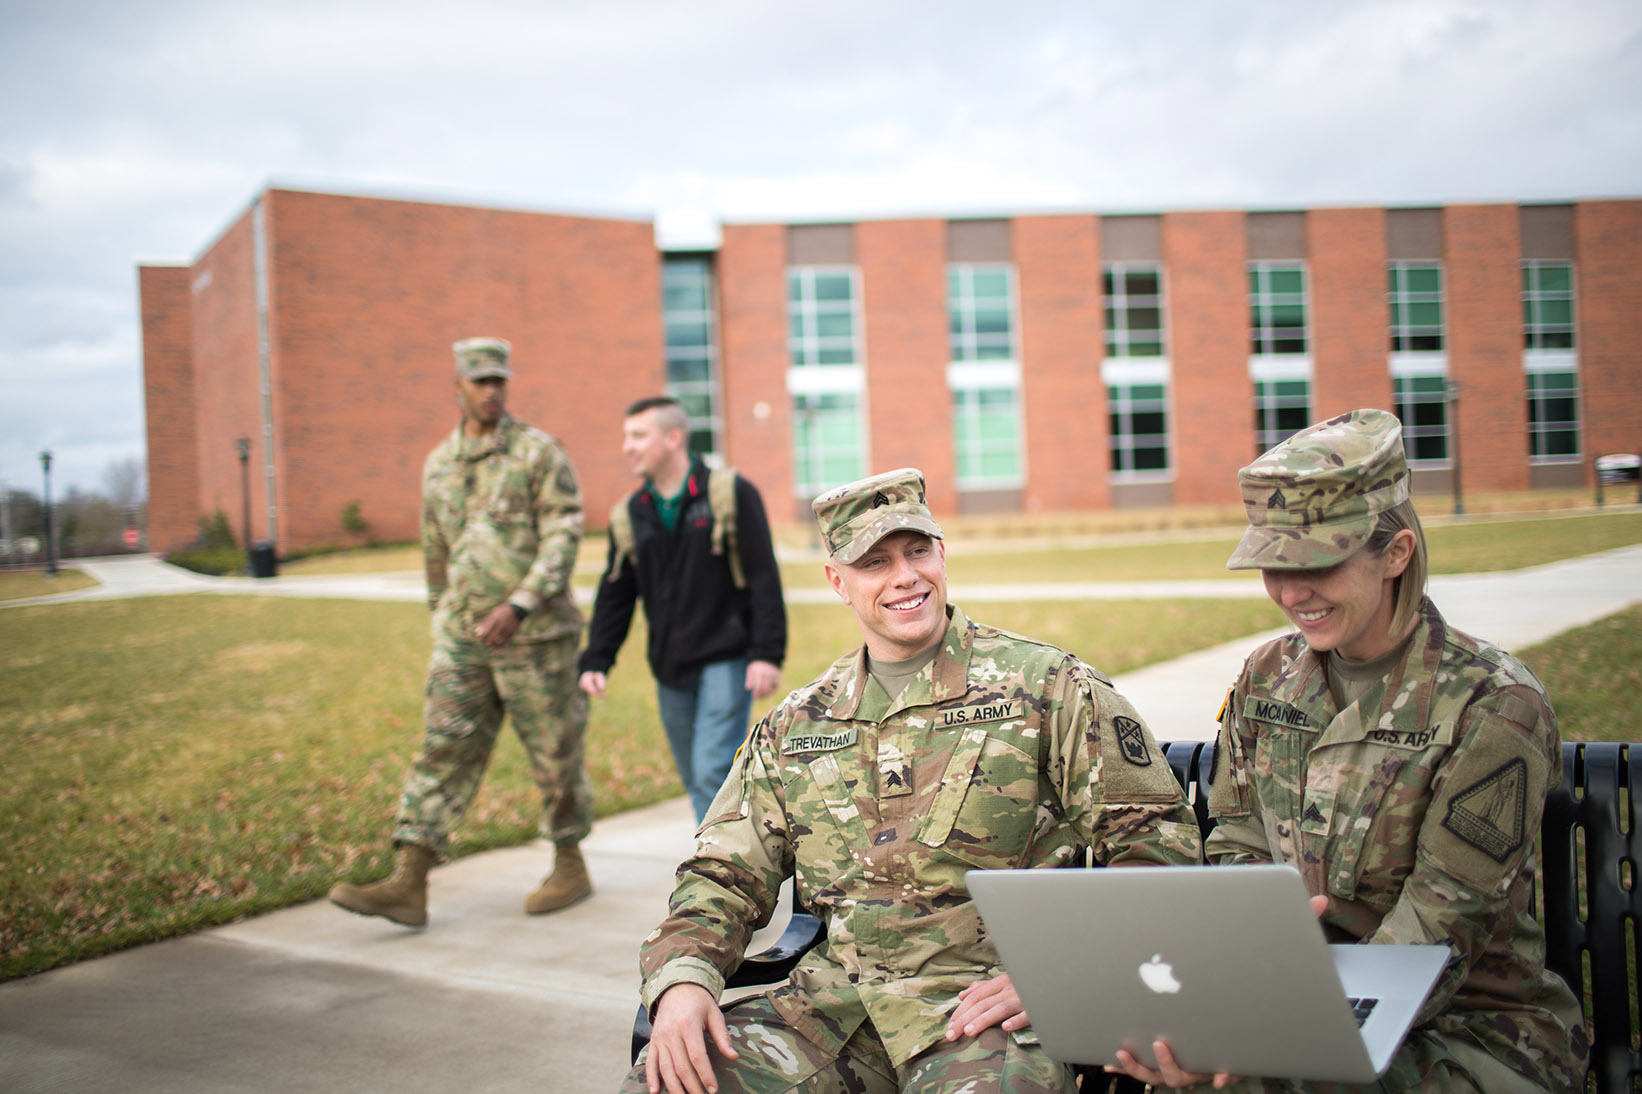 National Guard students in art quad